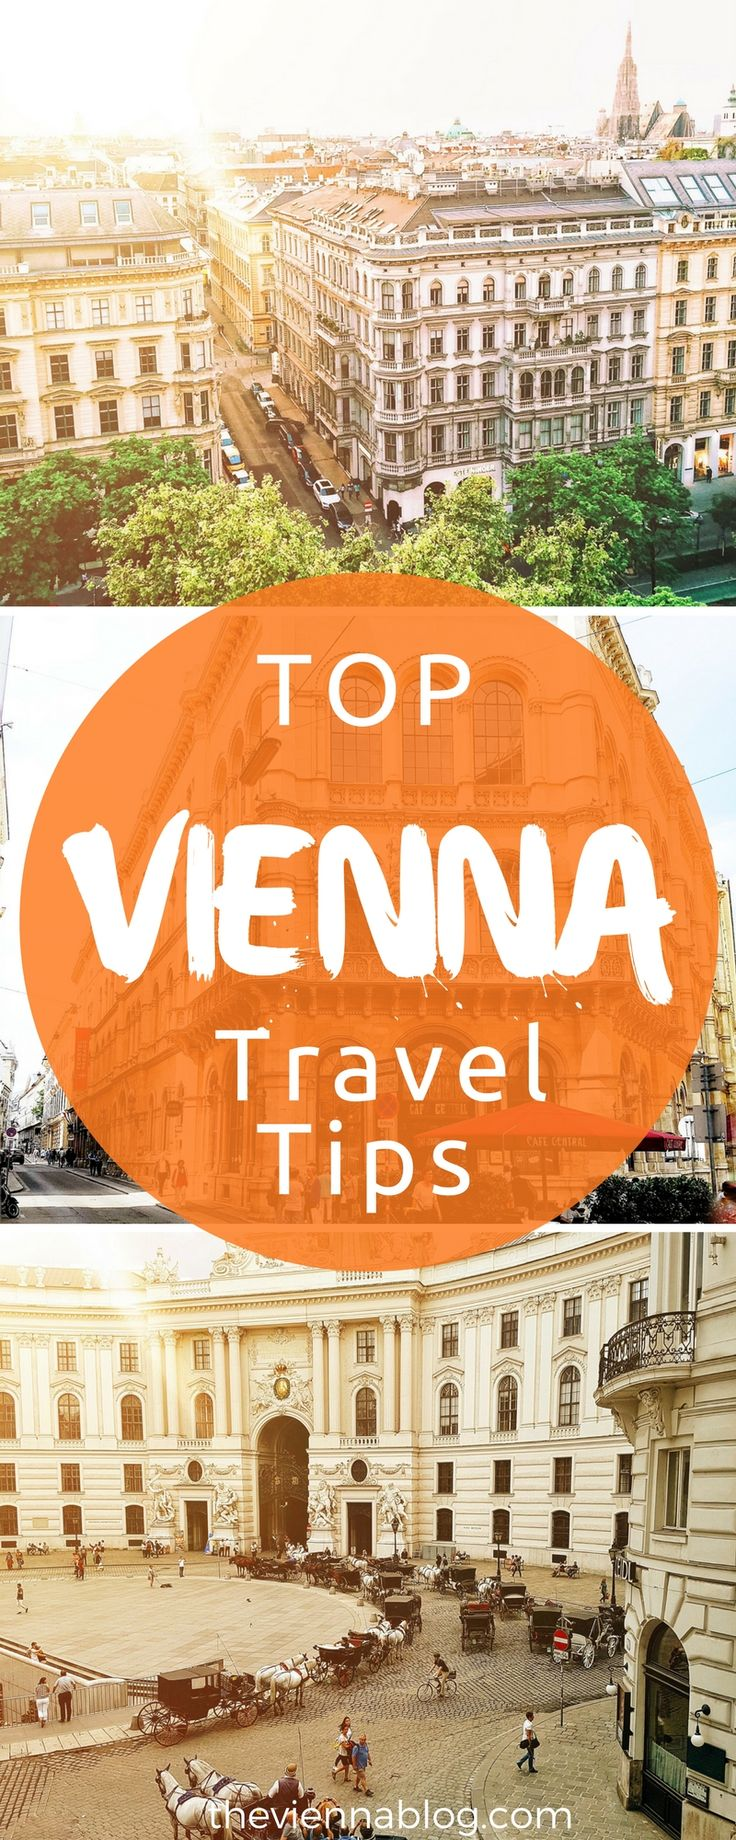 VIENNA TRAVEL GUIDE & TIPS